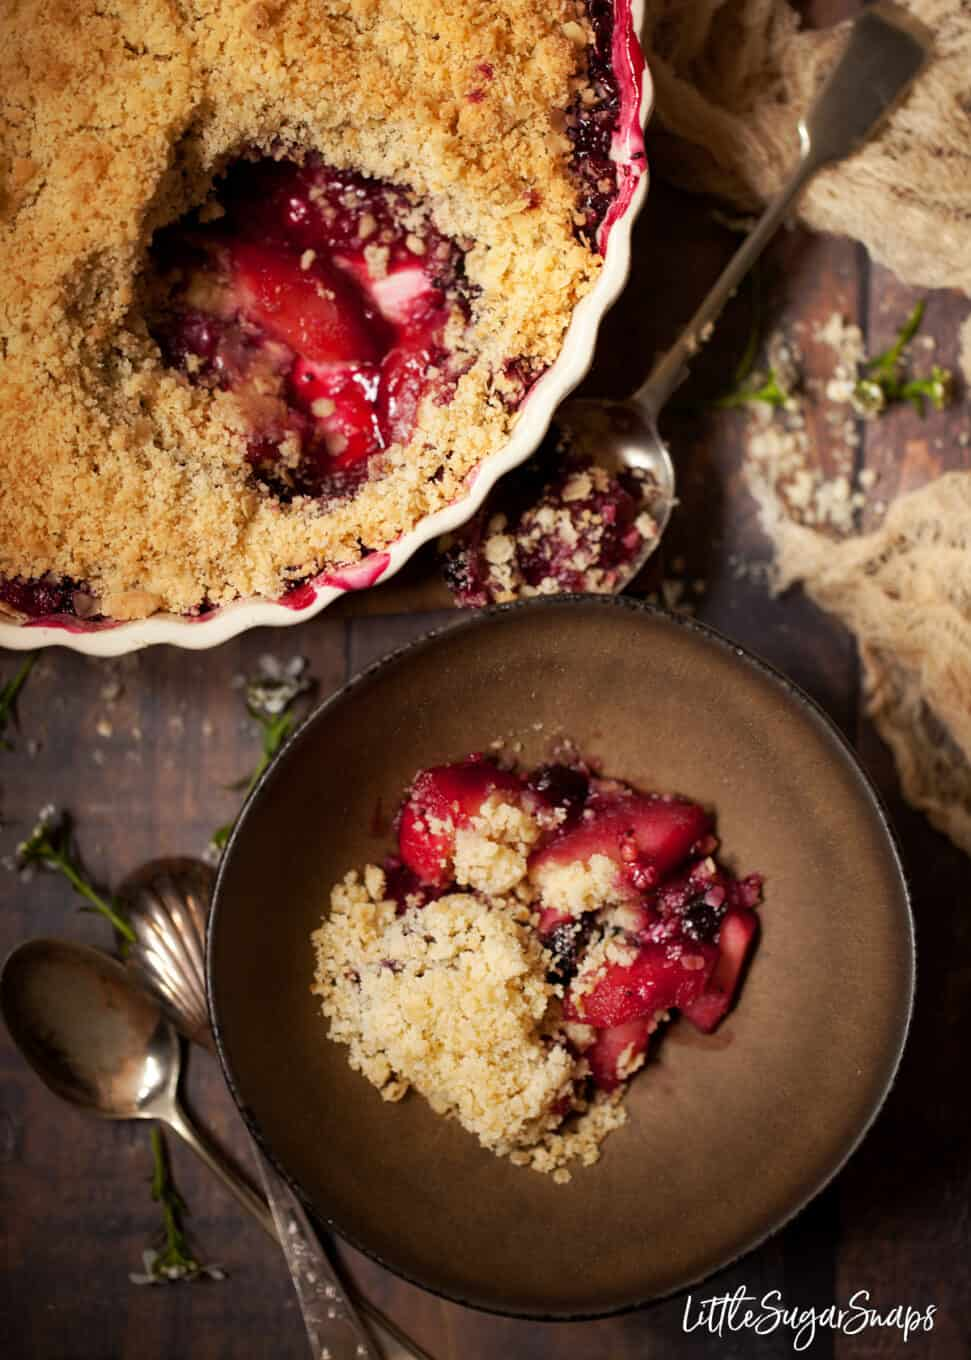 Blackcurrant crumble with apple served from a large round oven dish into a bowl. Rustic setting with wild flowers on the tablet top